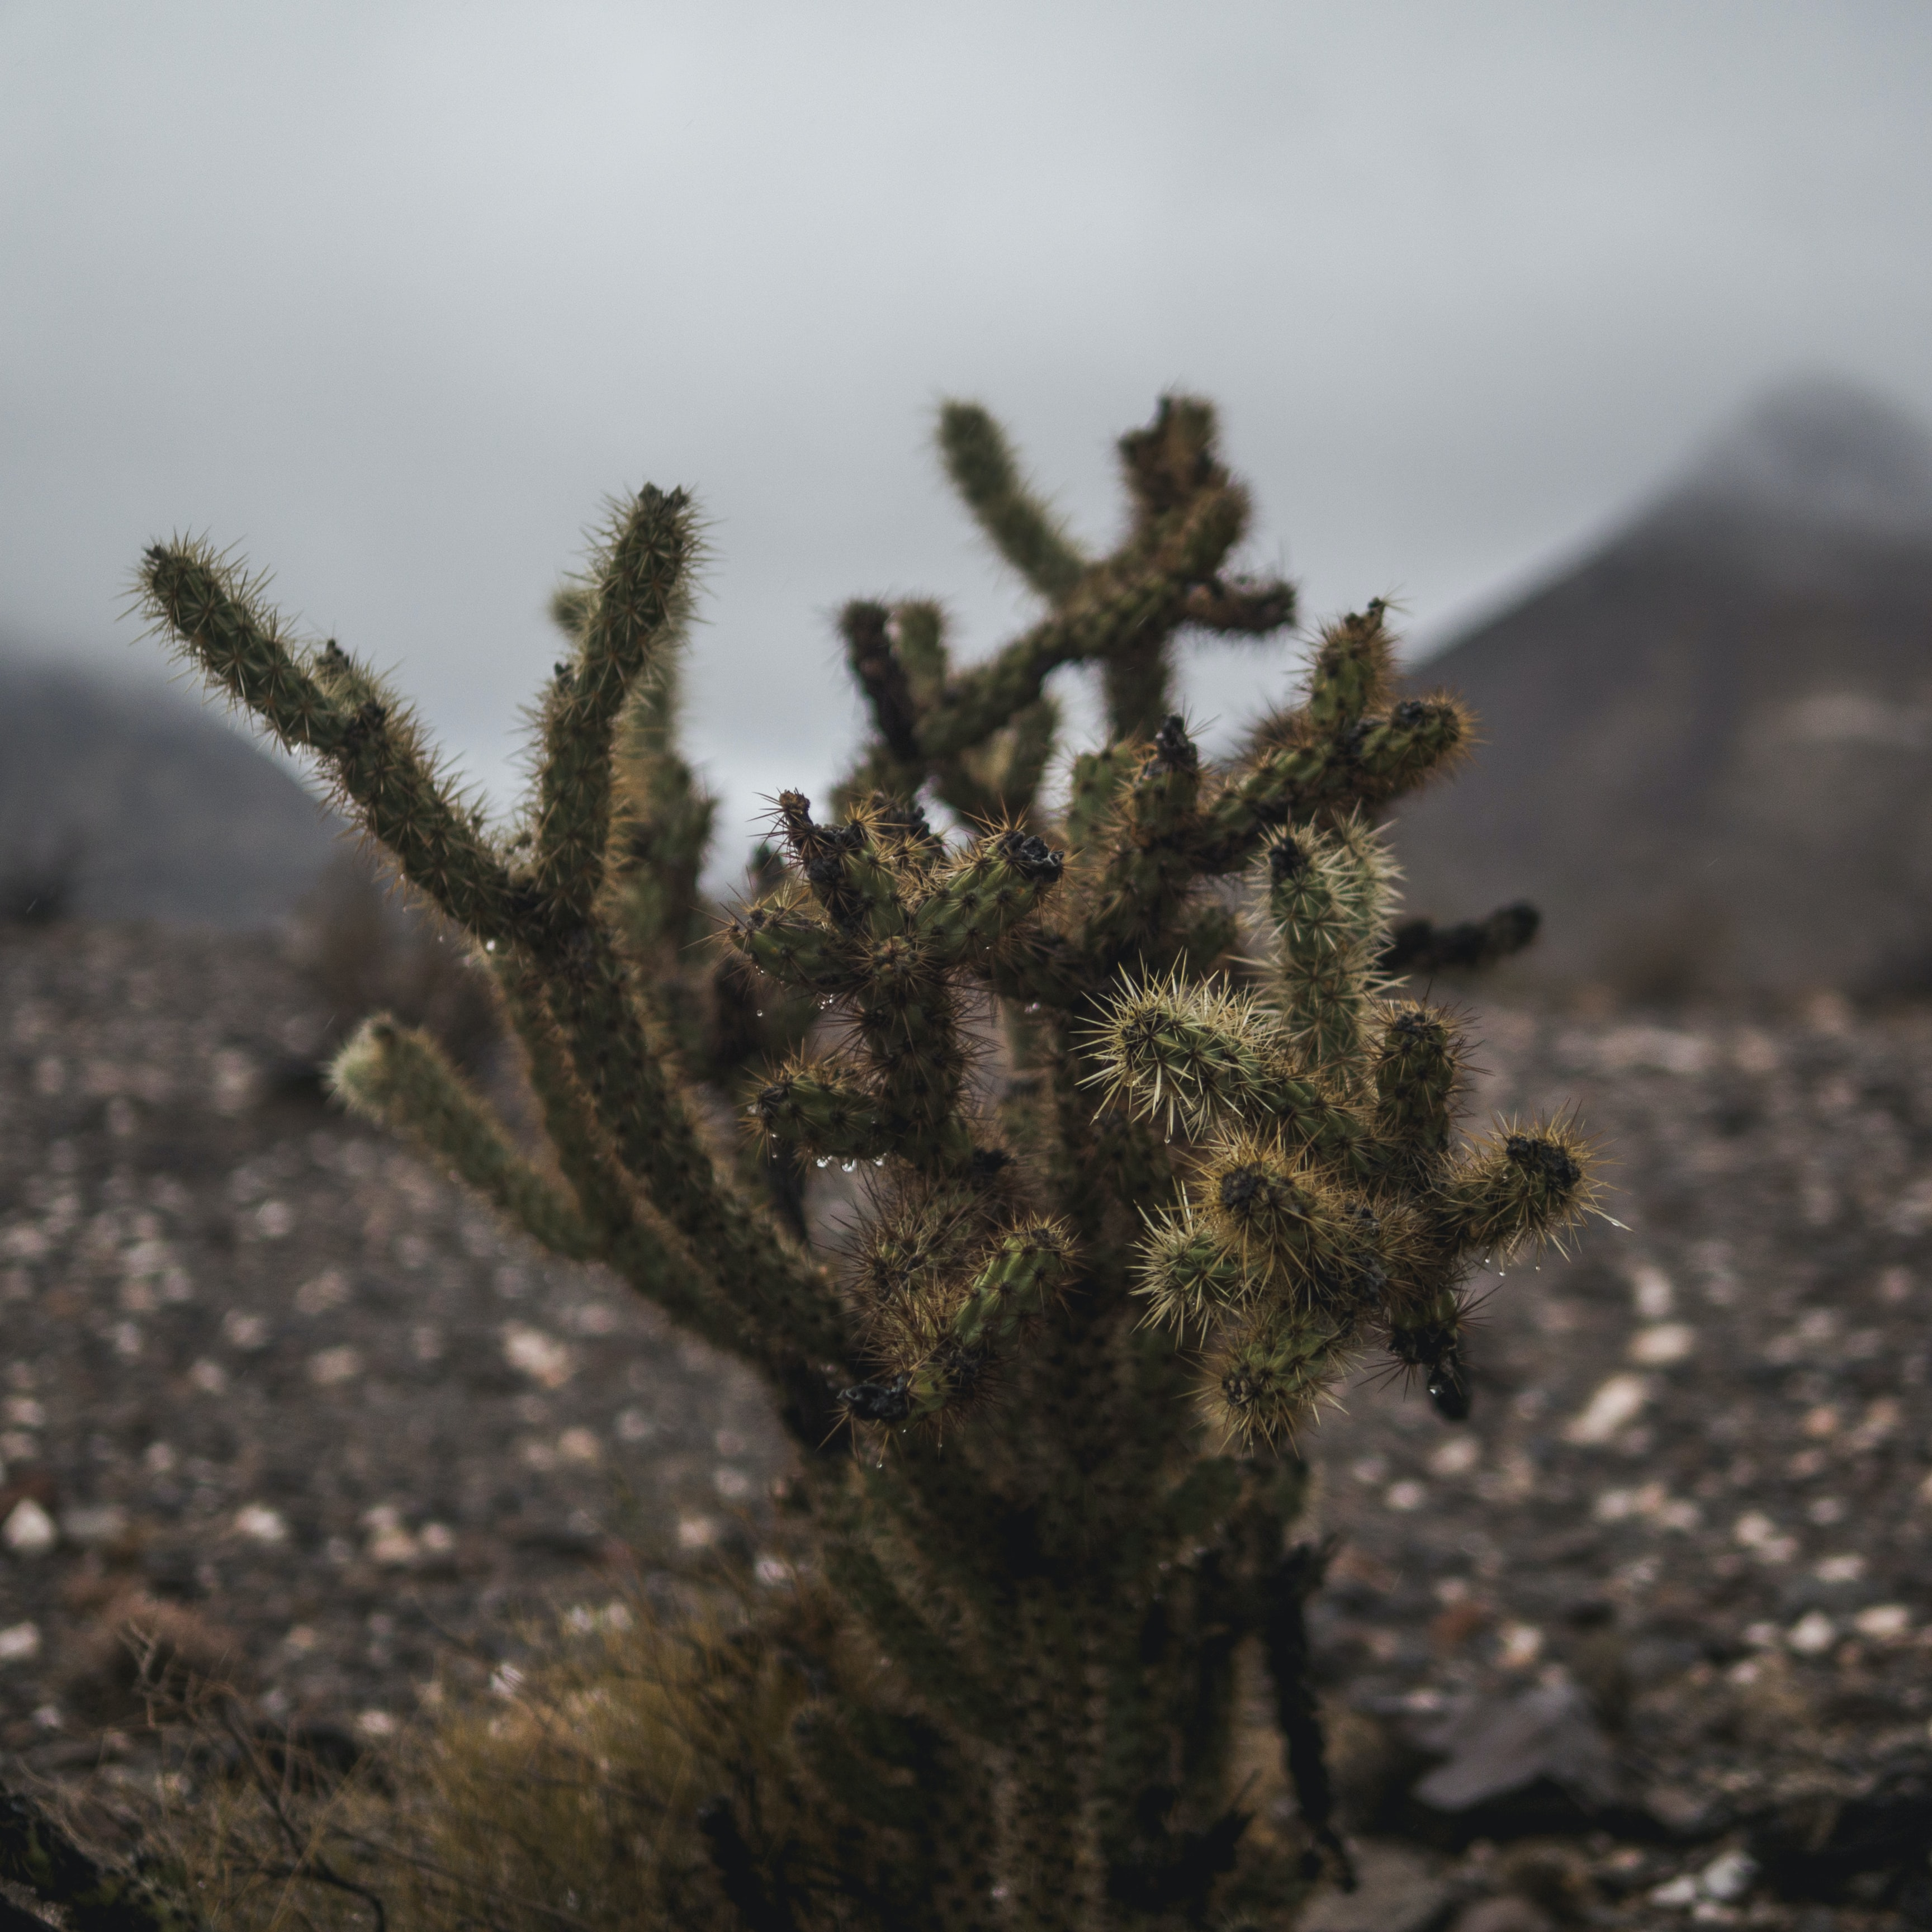 A lone green and brown cactus with water droplets hanging from its needles